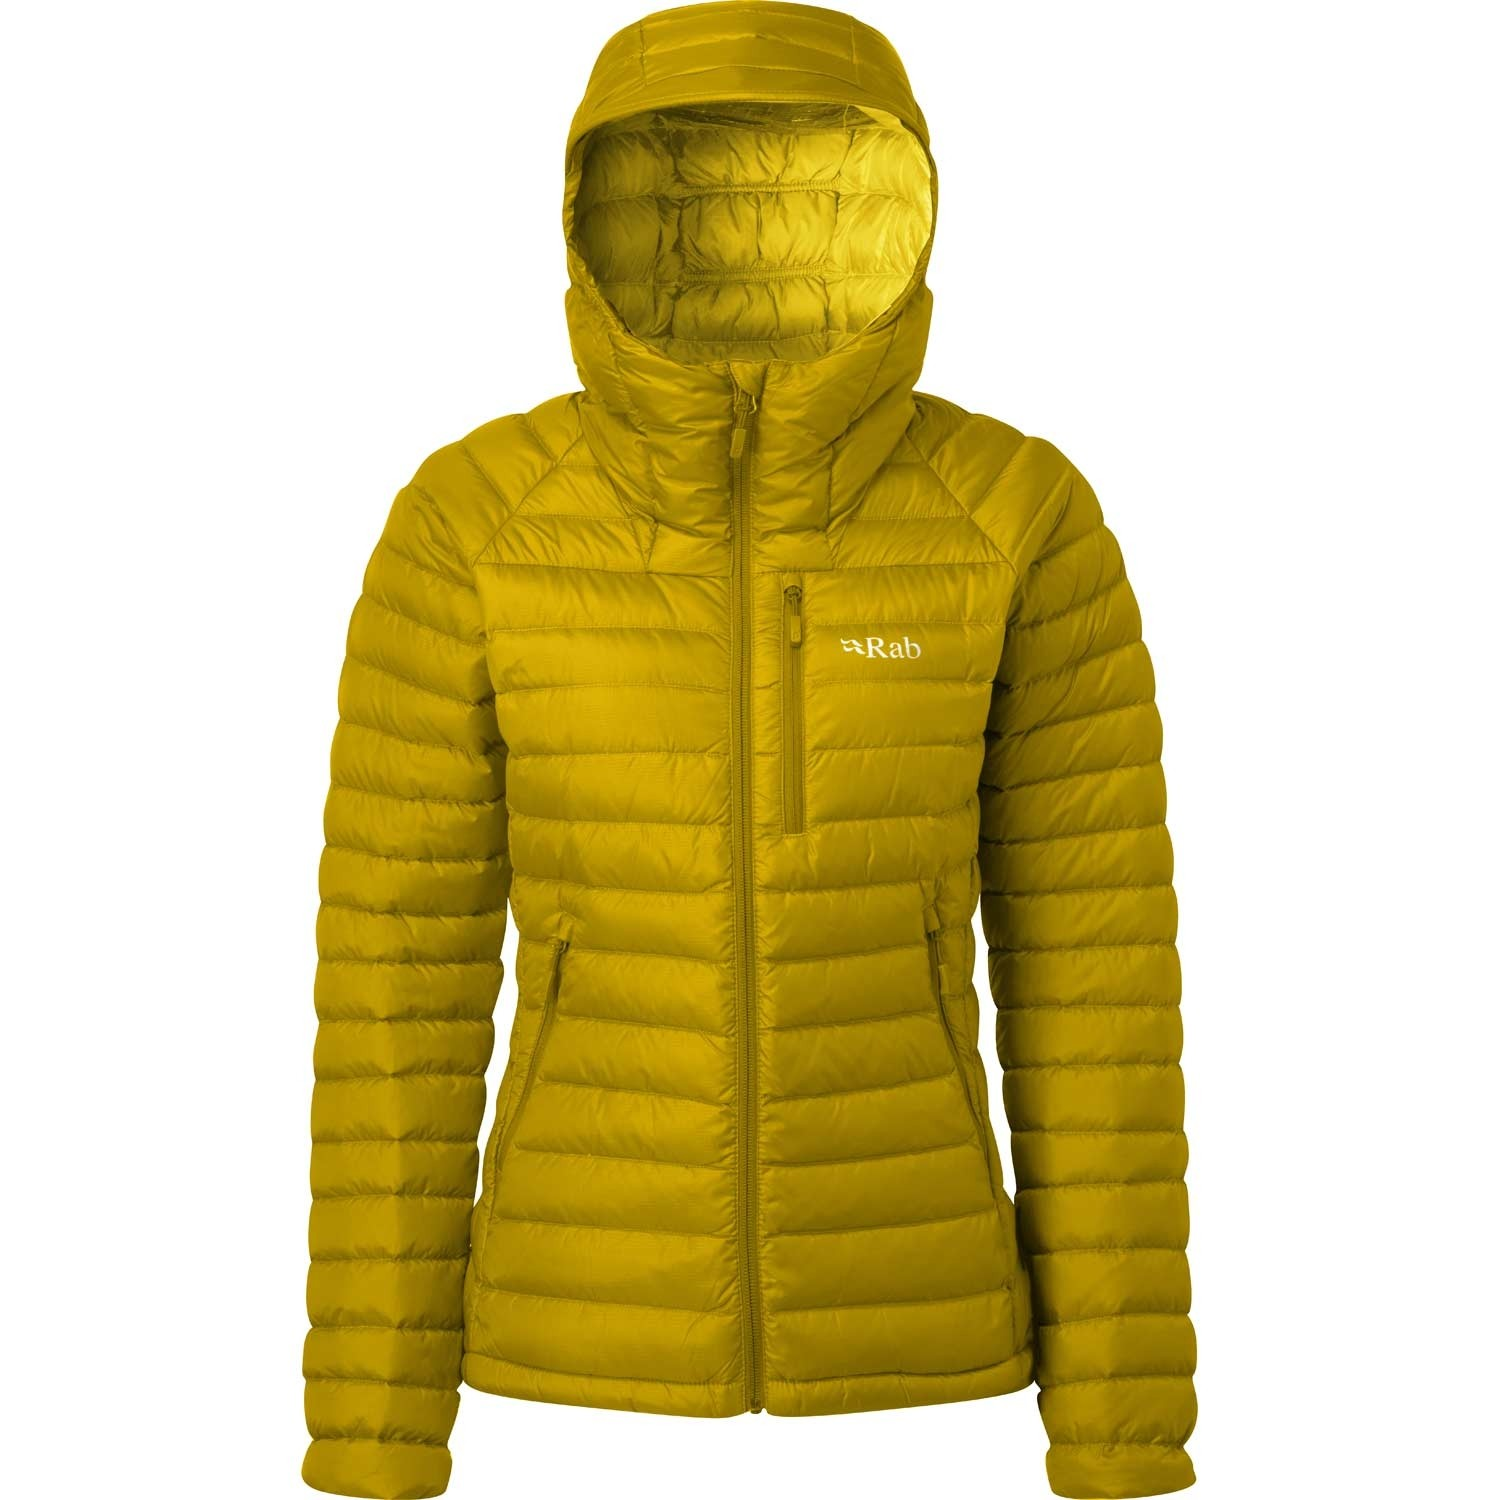 Rab Microlight Alpine Women's Down Jacket - Dark Sulphur